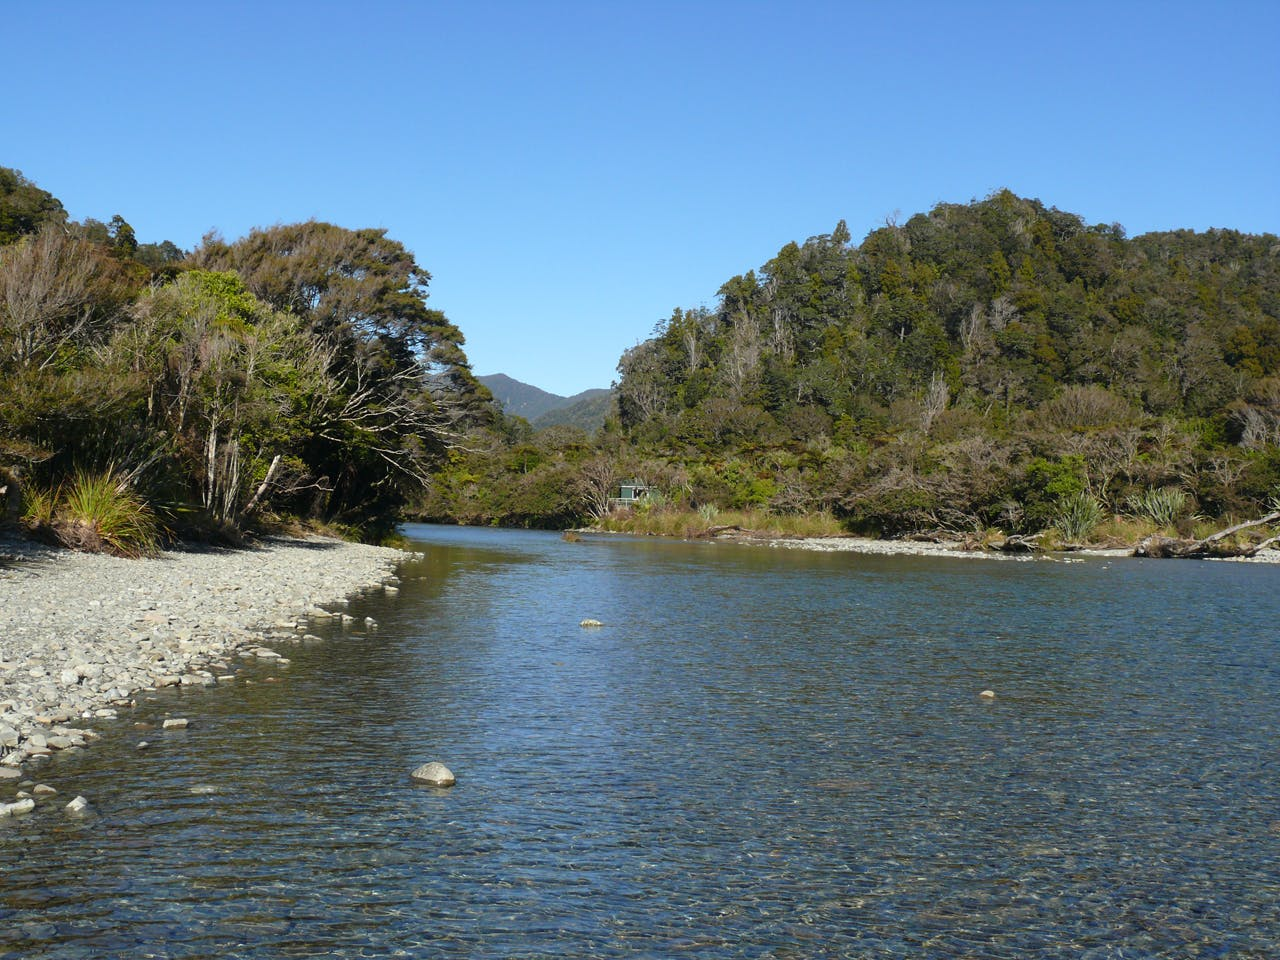 The mouth of the Stafford River with Stafford Hut nestled on its banks. Photo: Geoff Spearpoint